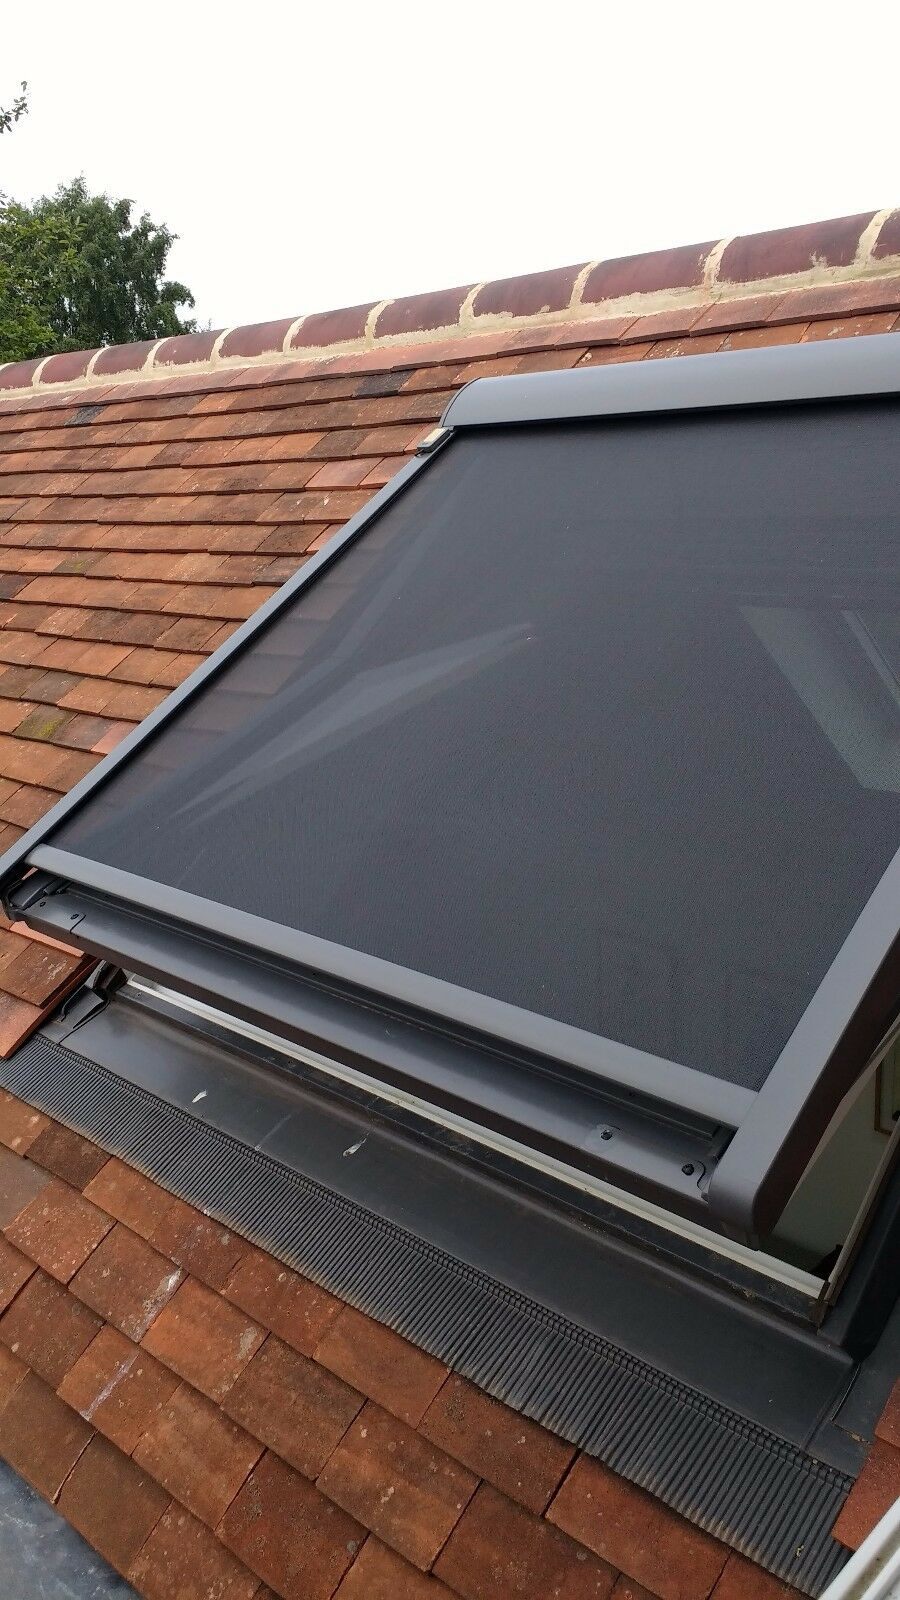 Velux ggl uk08 velux ggl uk08 with velux ggl uk08 window for Velux ggl 808 dimensions